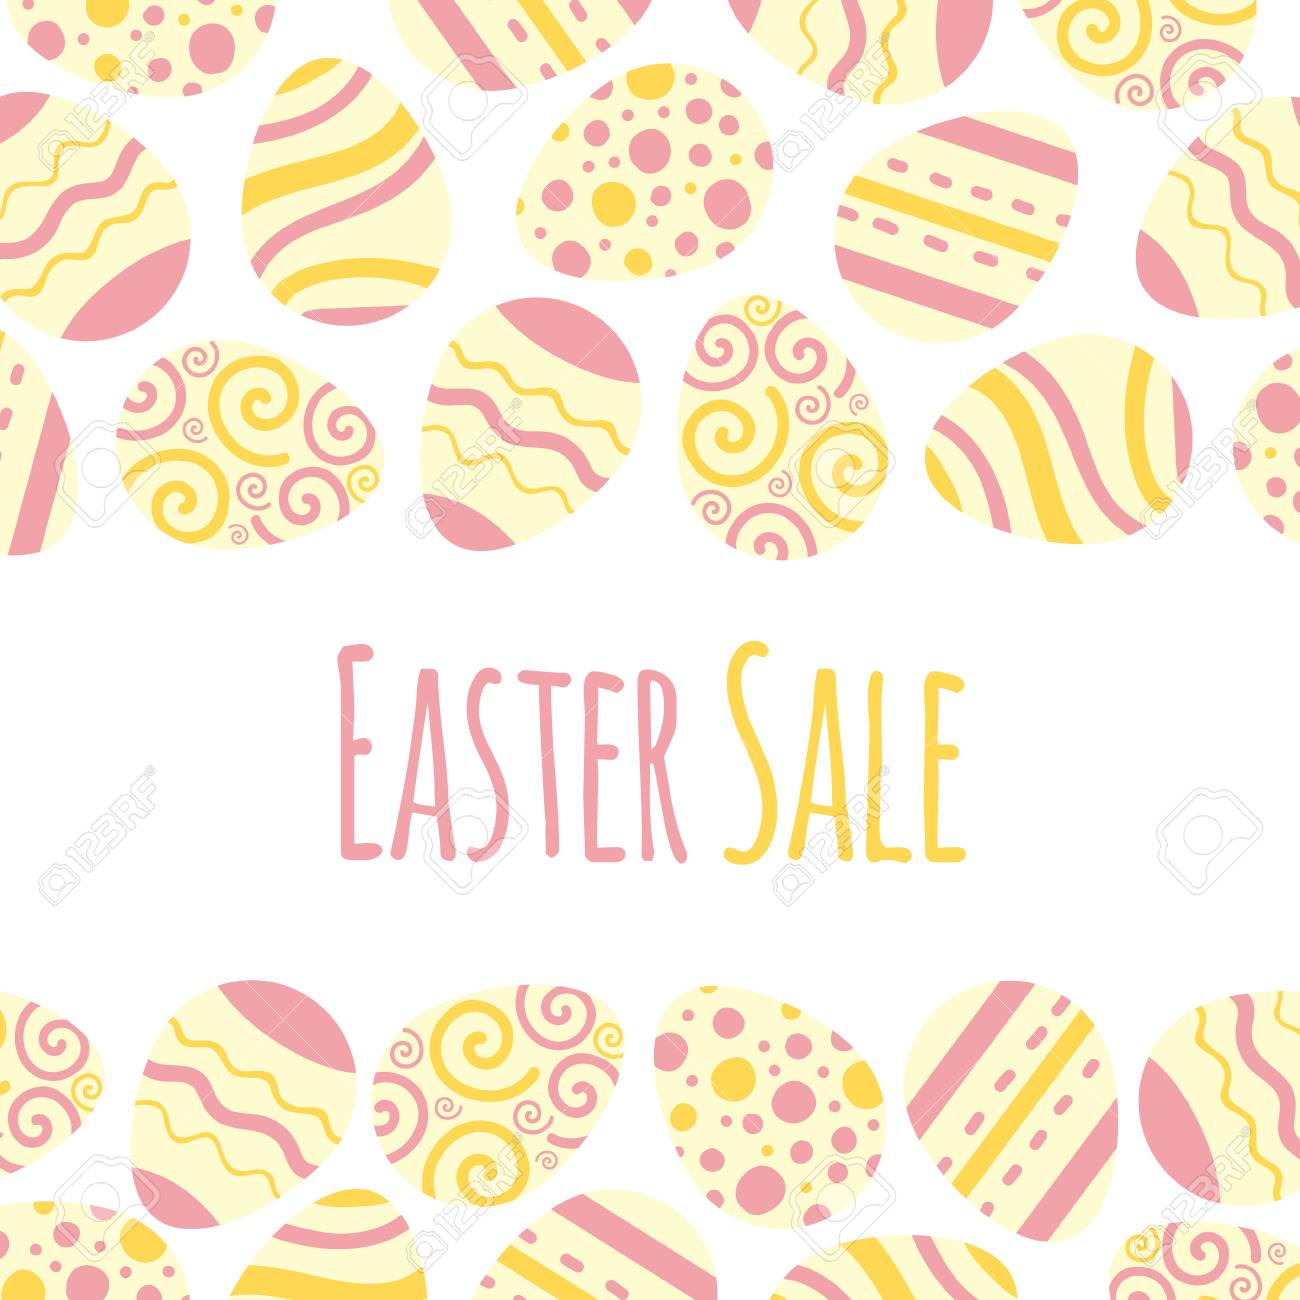 Easter sale vector frame. Background illustration with eggs and lettering. - 97418014